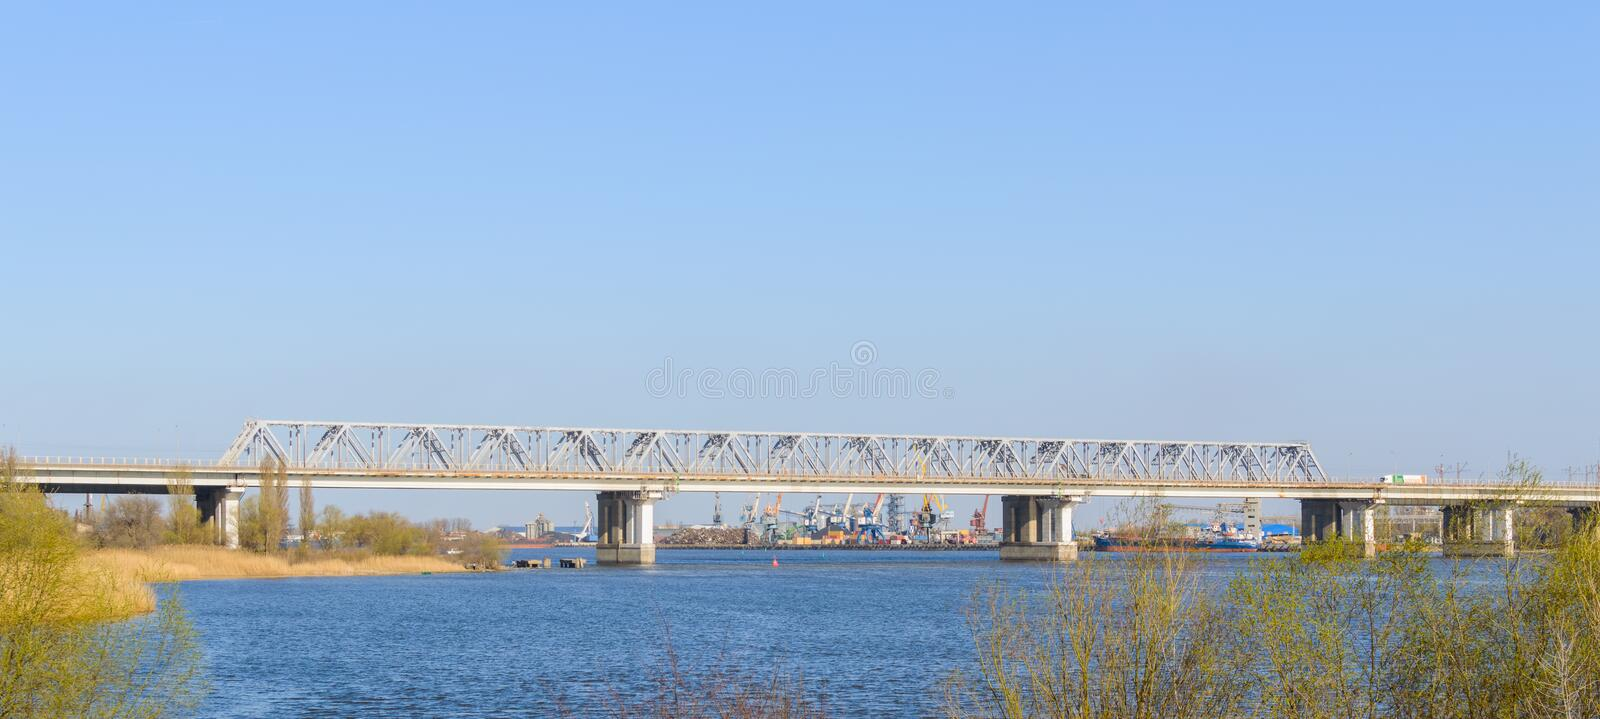 West railroad bridge above river Don. Industrial port on background royalty free stock images